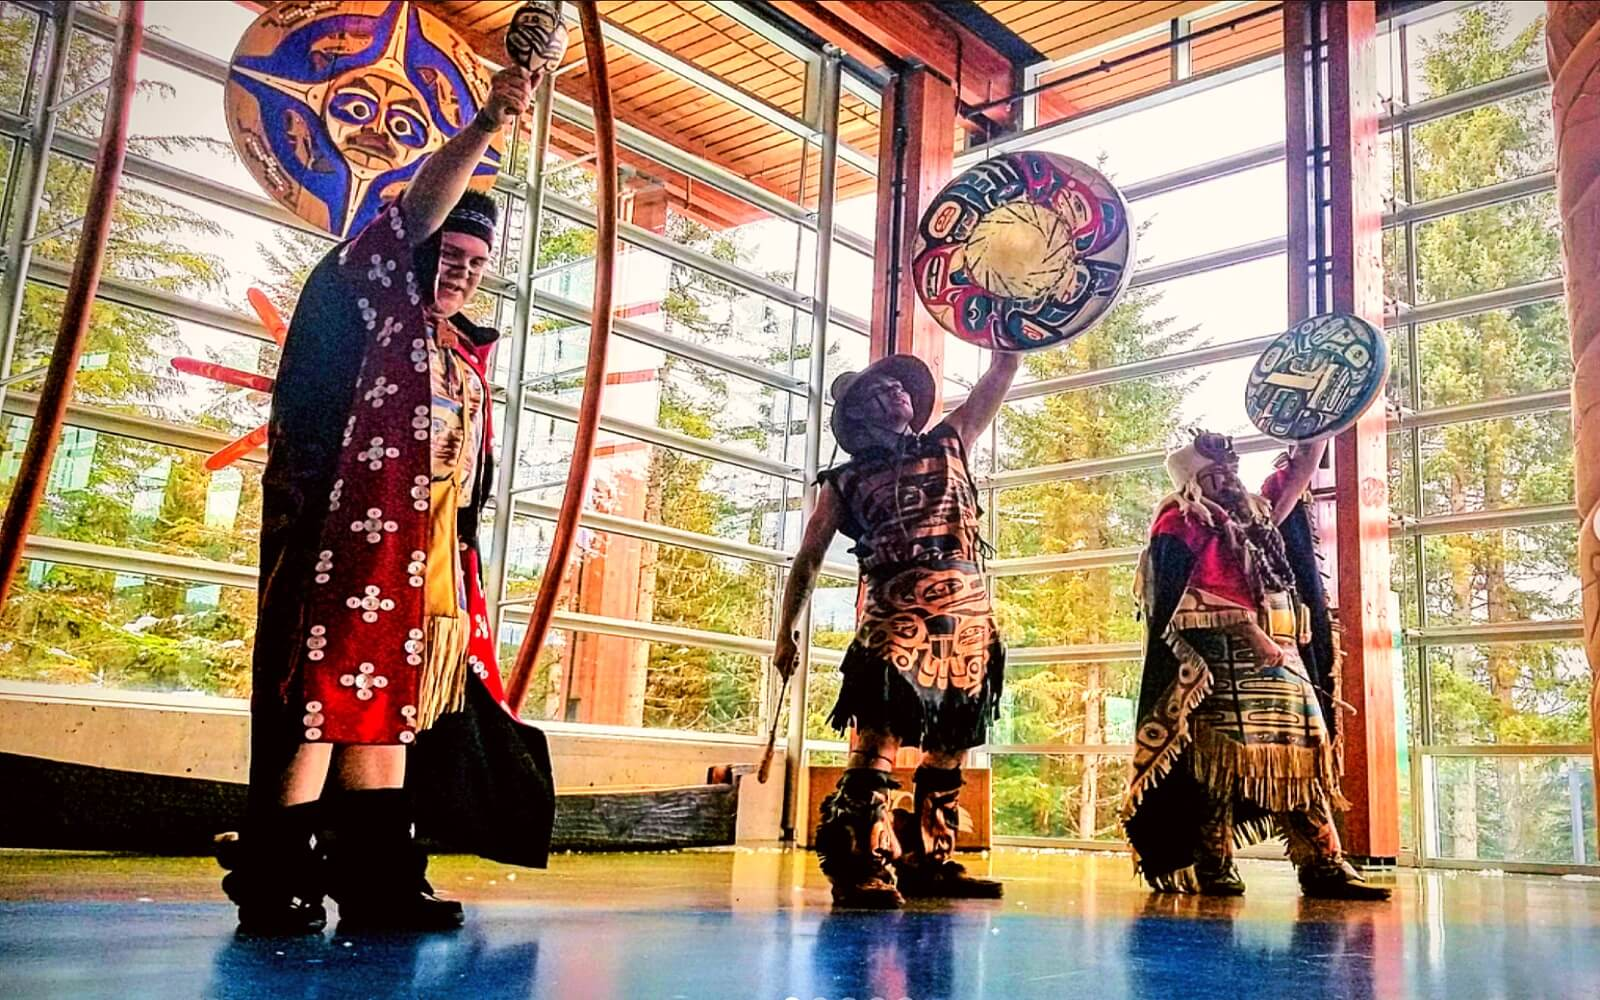 Traditional Squamish dancers at the slcc, Whistler